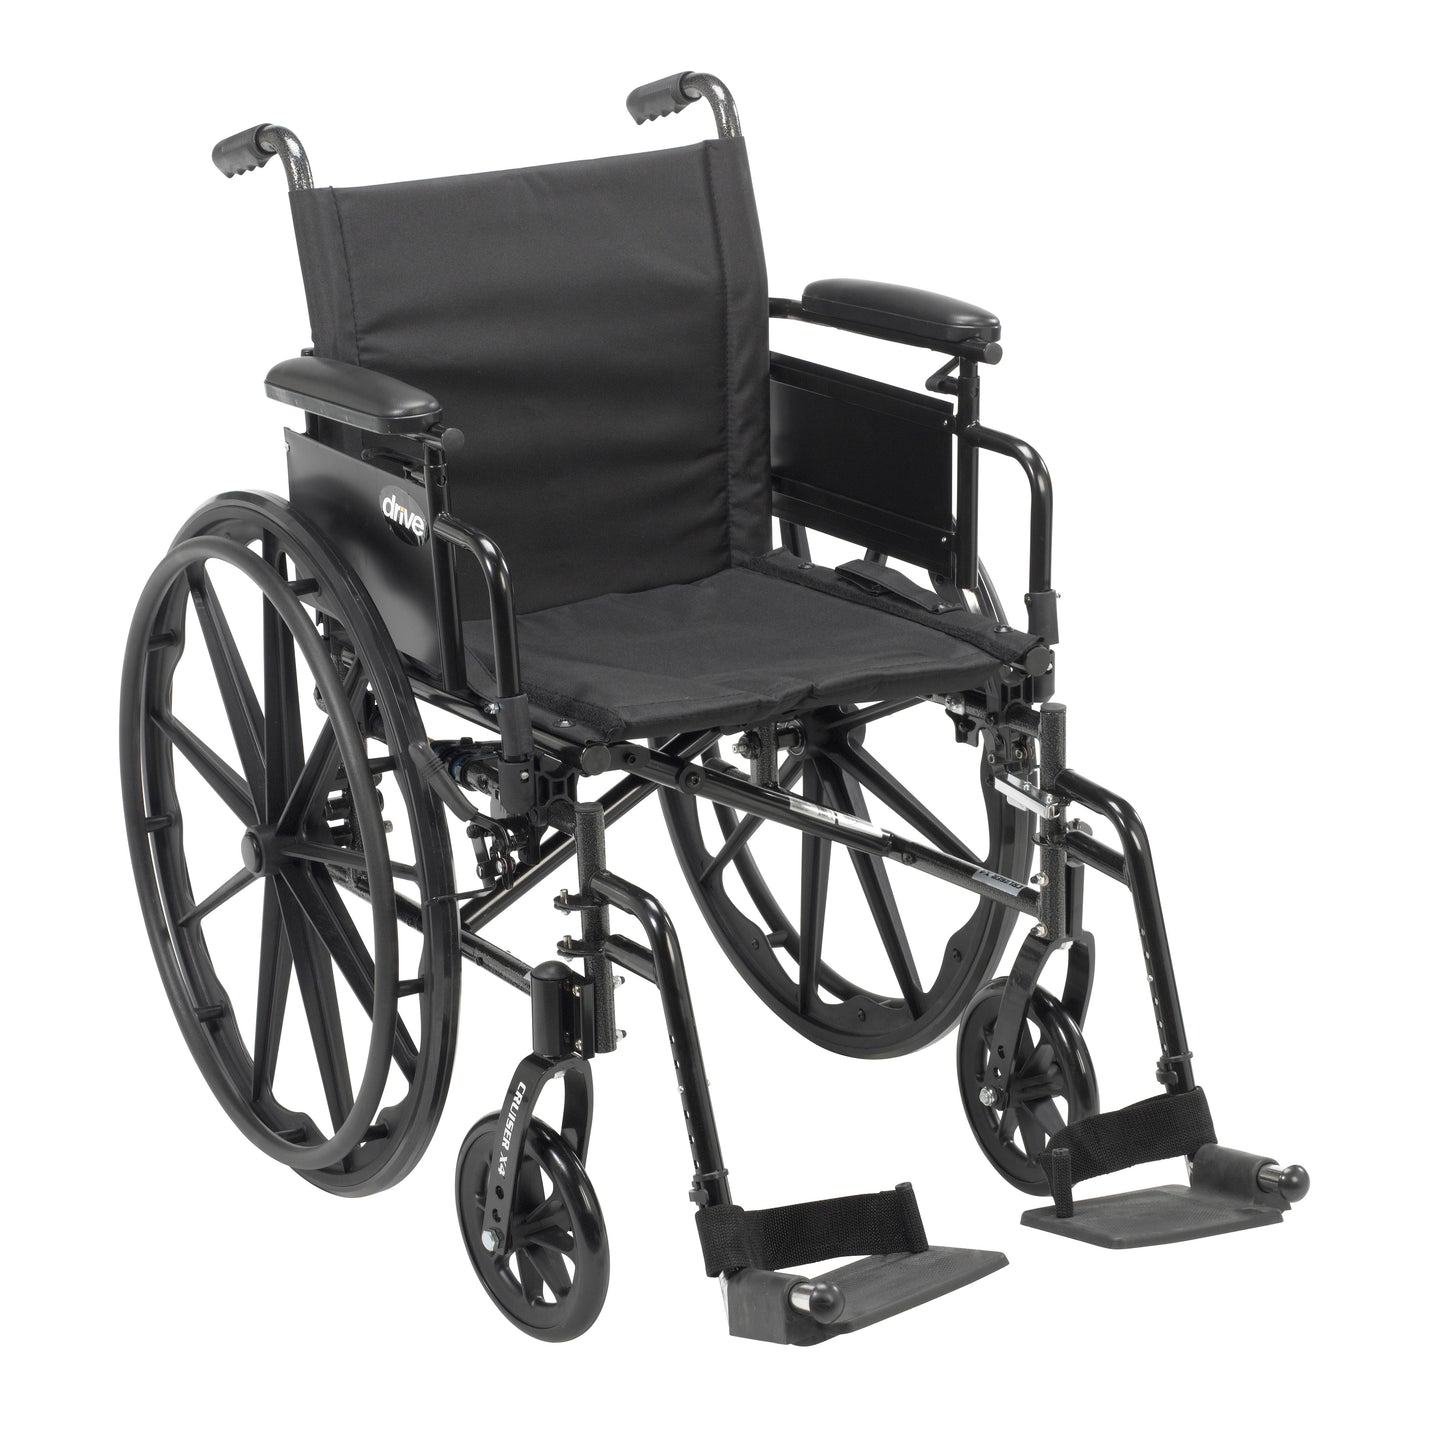 Drive Cruiser X4 Lightweight Dual Axle Wheelchair with Adjustable Detachable Arms- Desk Arms- Swing Away Footrests- 16